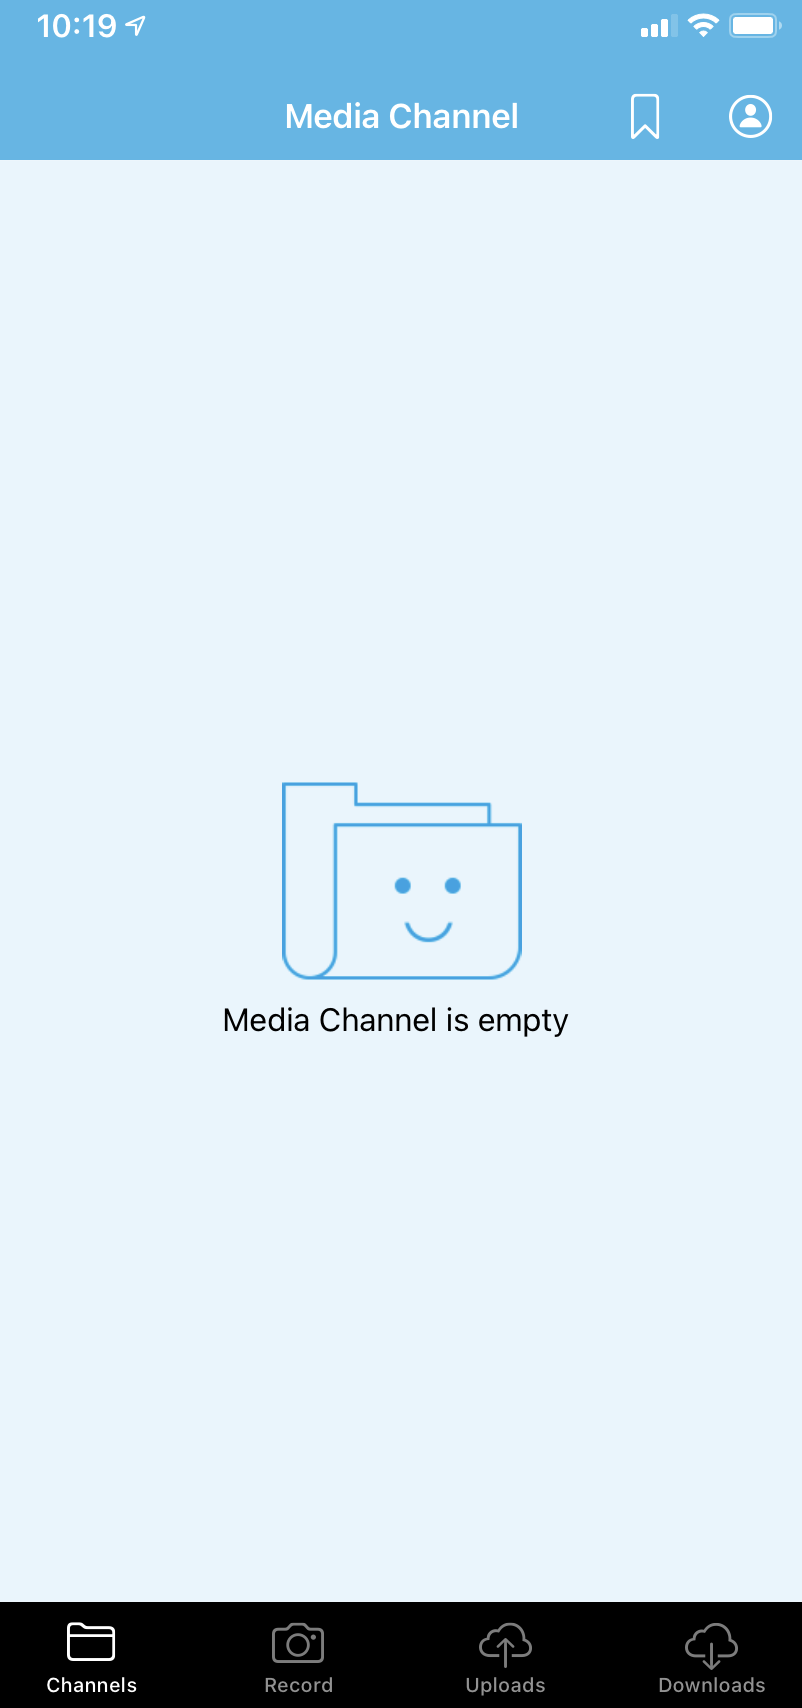 Media channel page